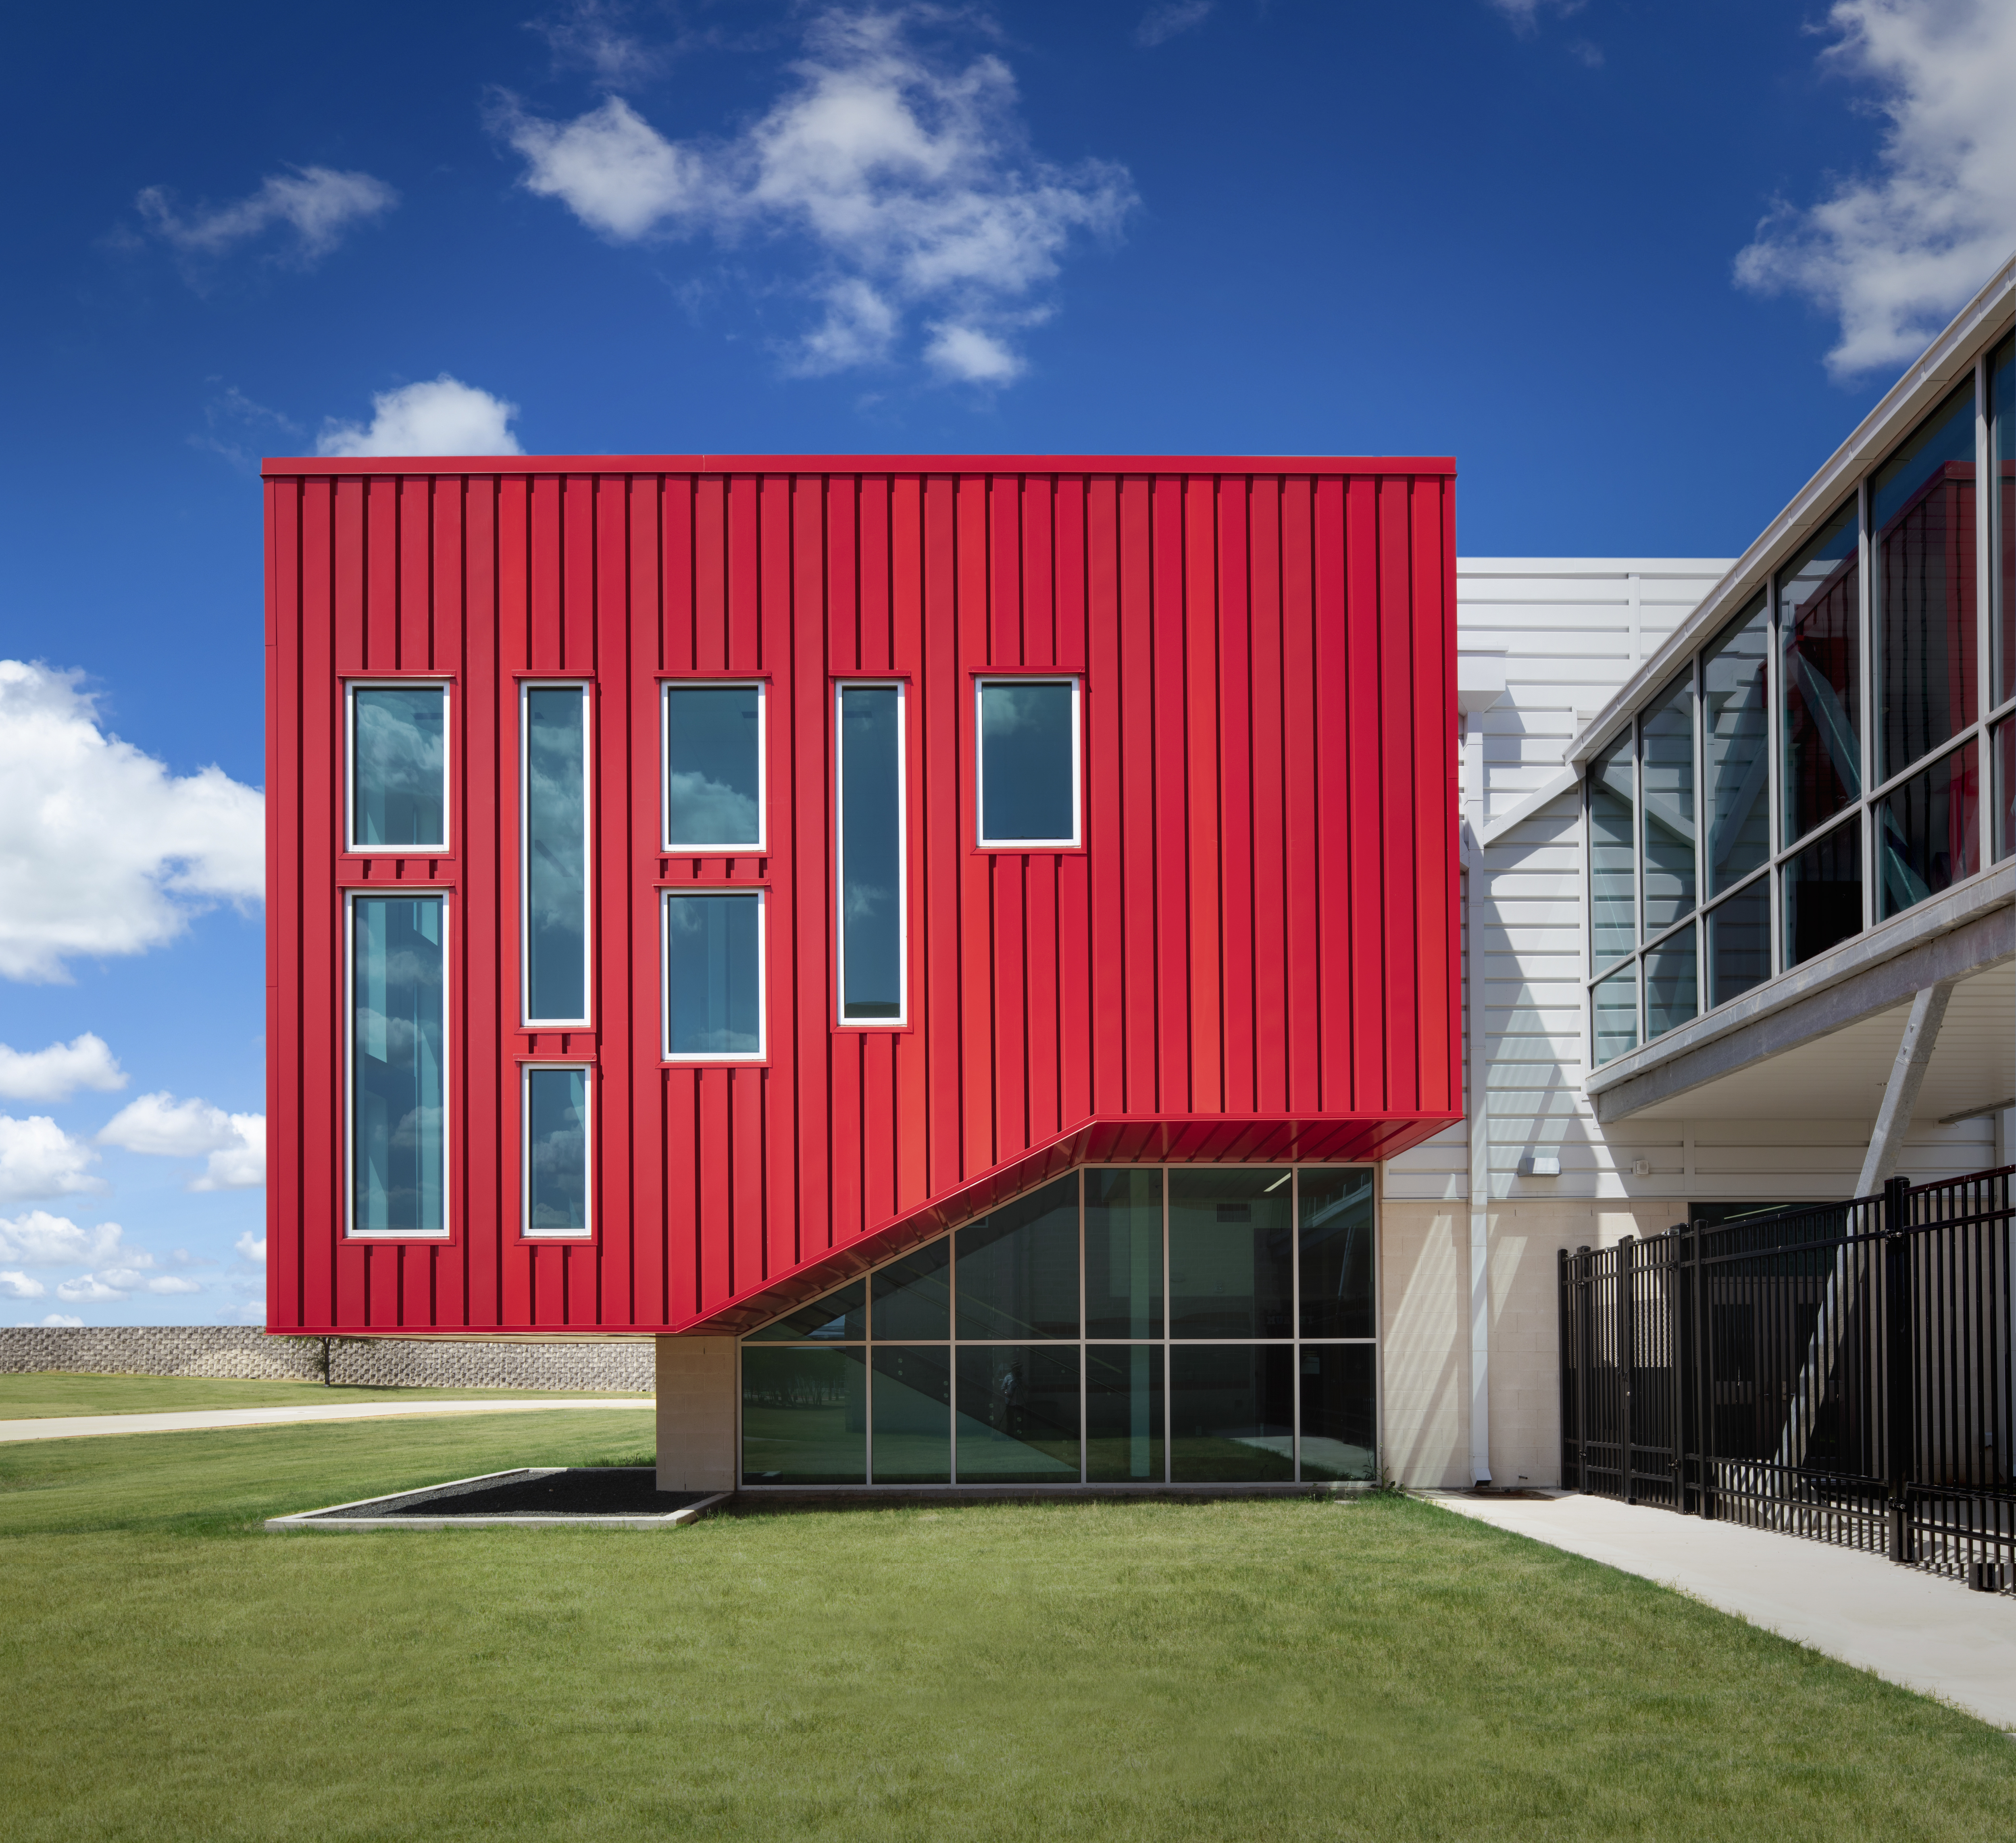 Pac Clad Metal Wall Panel System Creates Vibrant Dimension Under Budget Building Design Construction